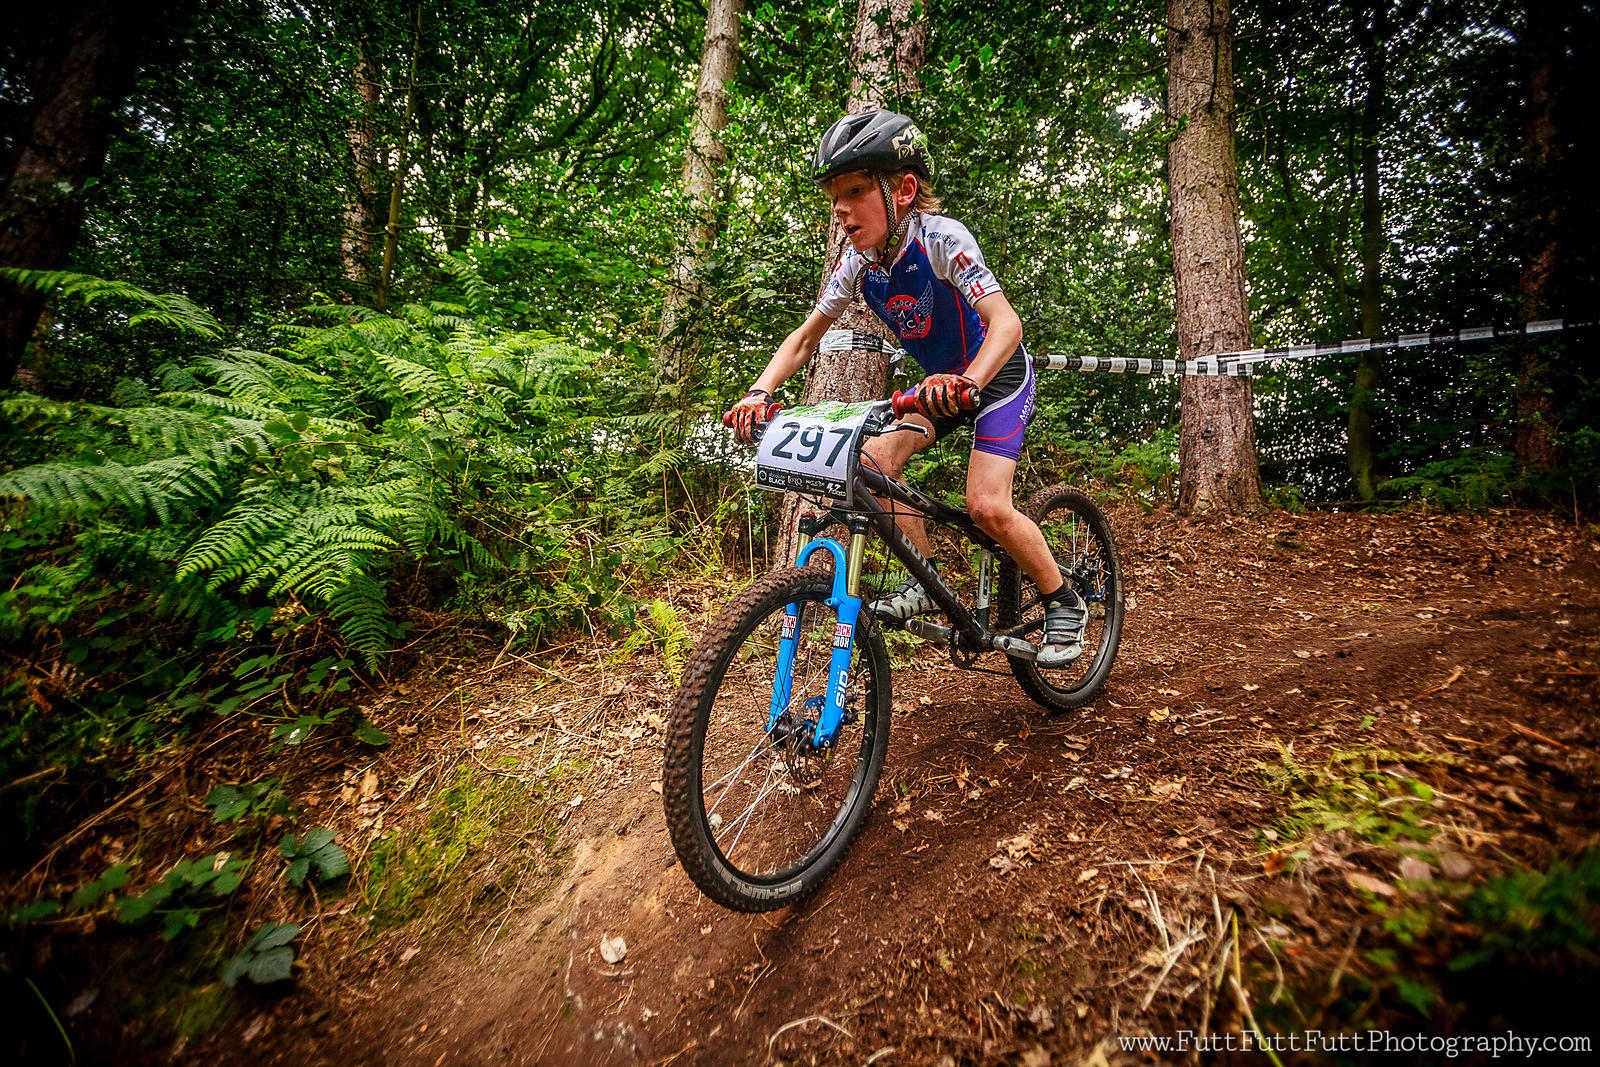 2017-07-15_Midlands_XC_MTB_Series_Eckington_288